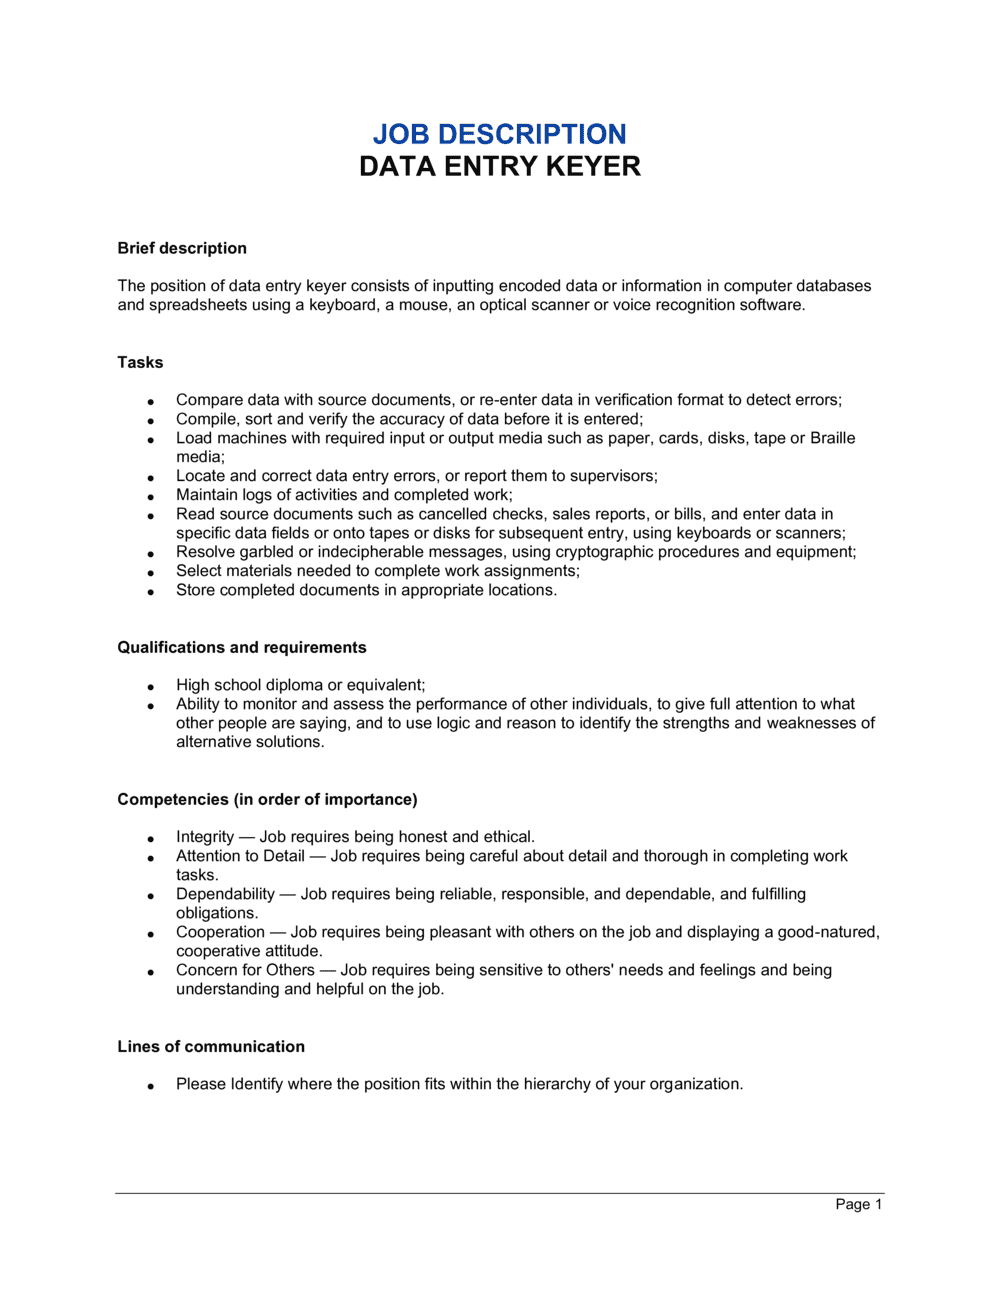 Business-in-a-Box's Data Entry Keyer Job Description Template